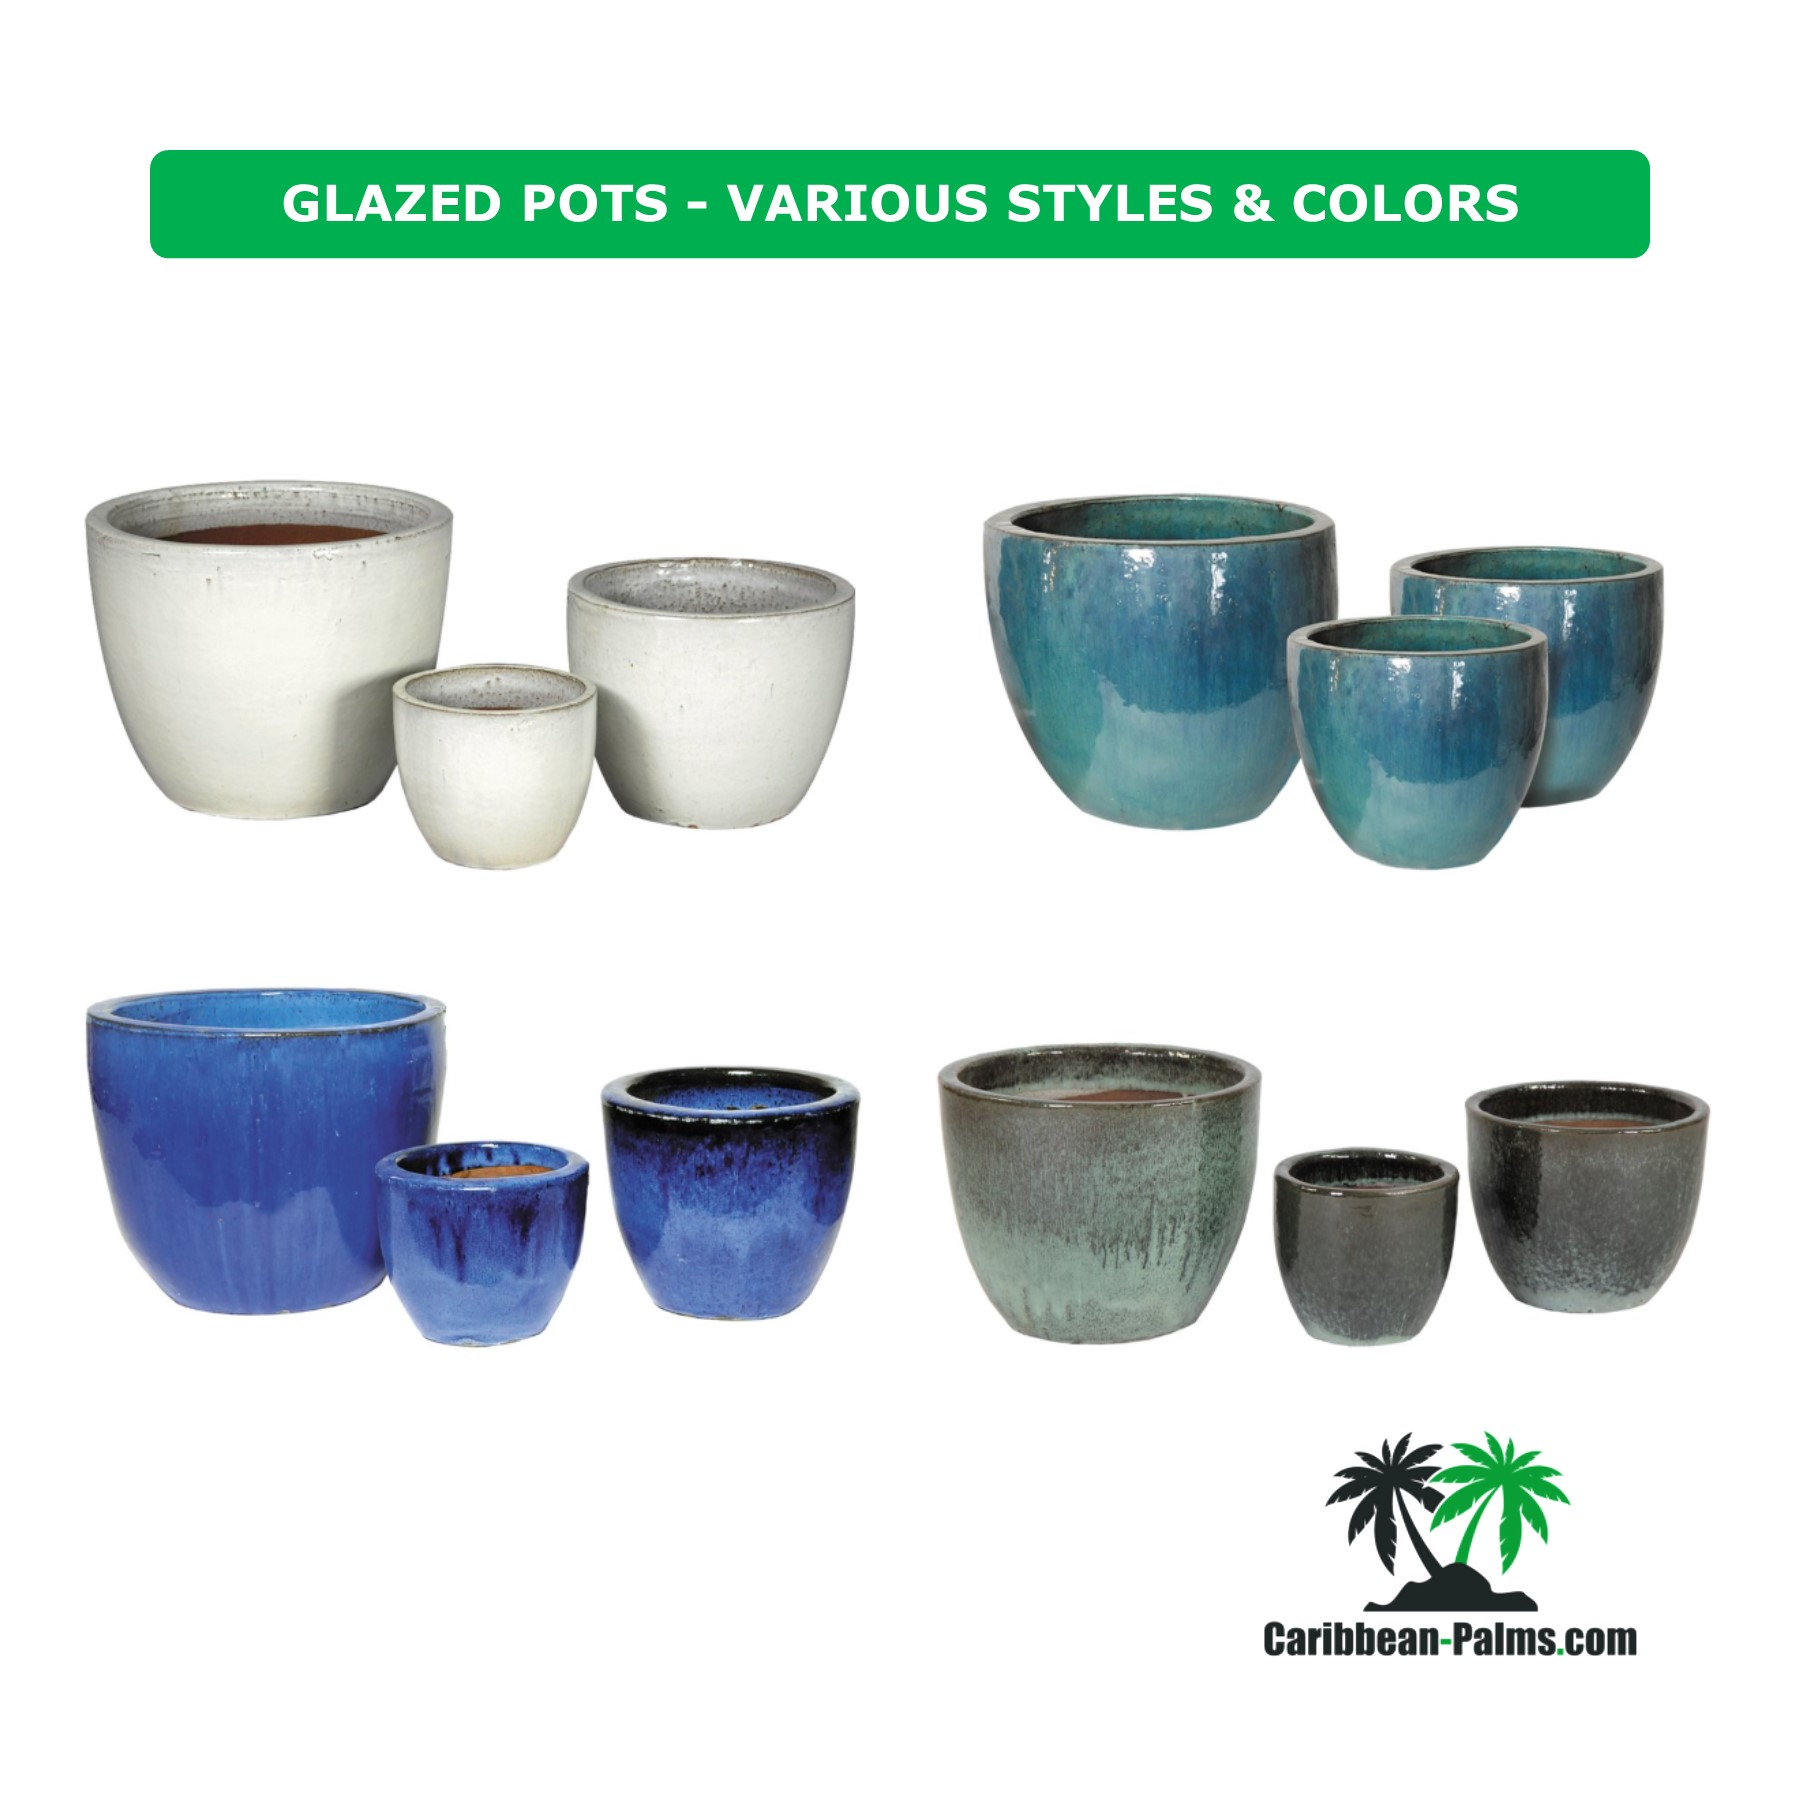 GLAZED POTS VARIOUS STYLES COLORS 4